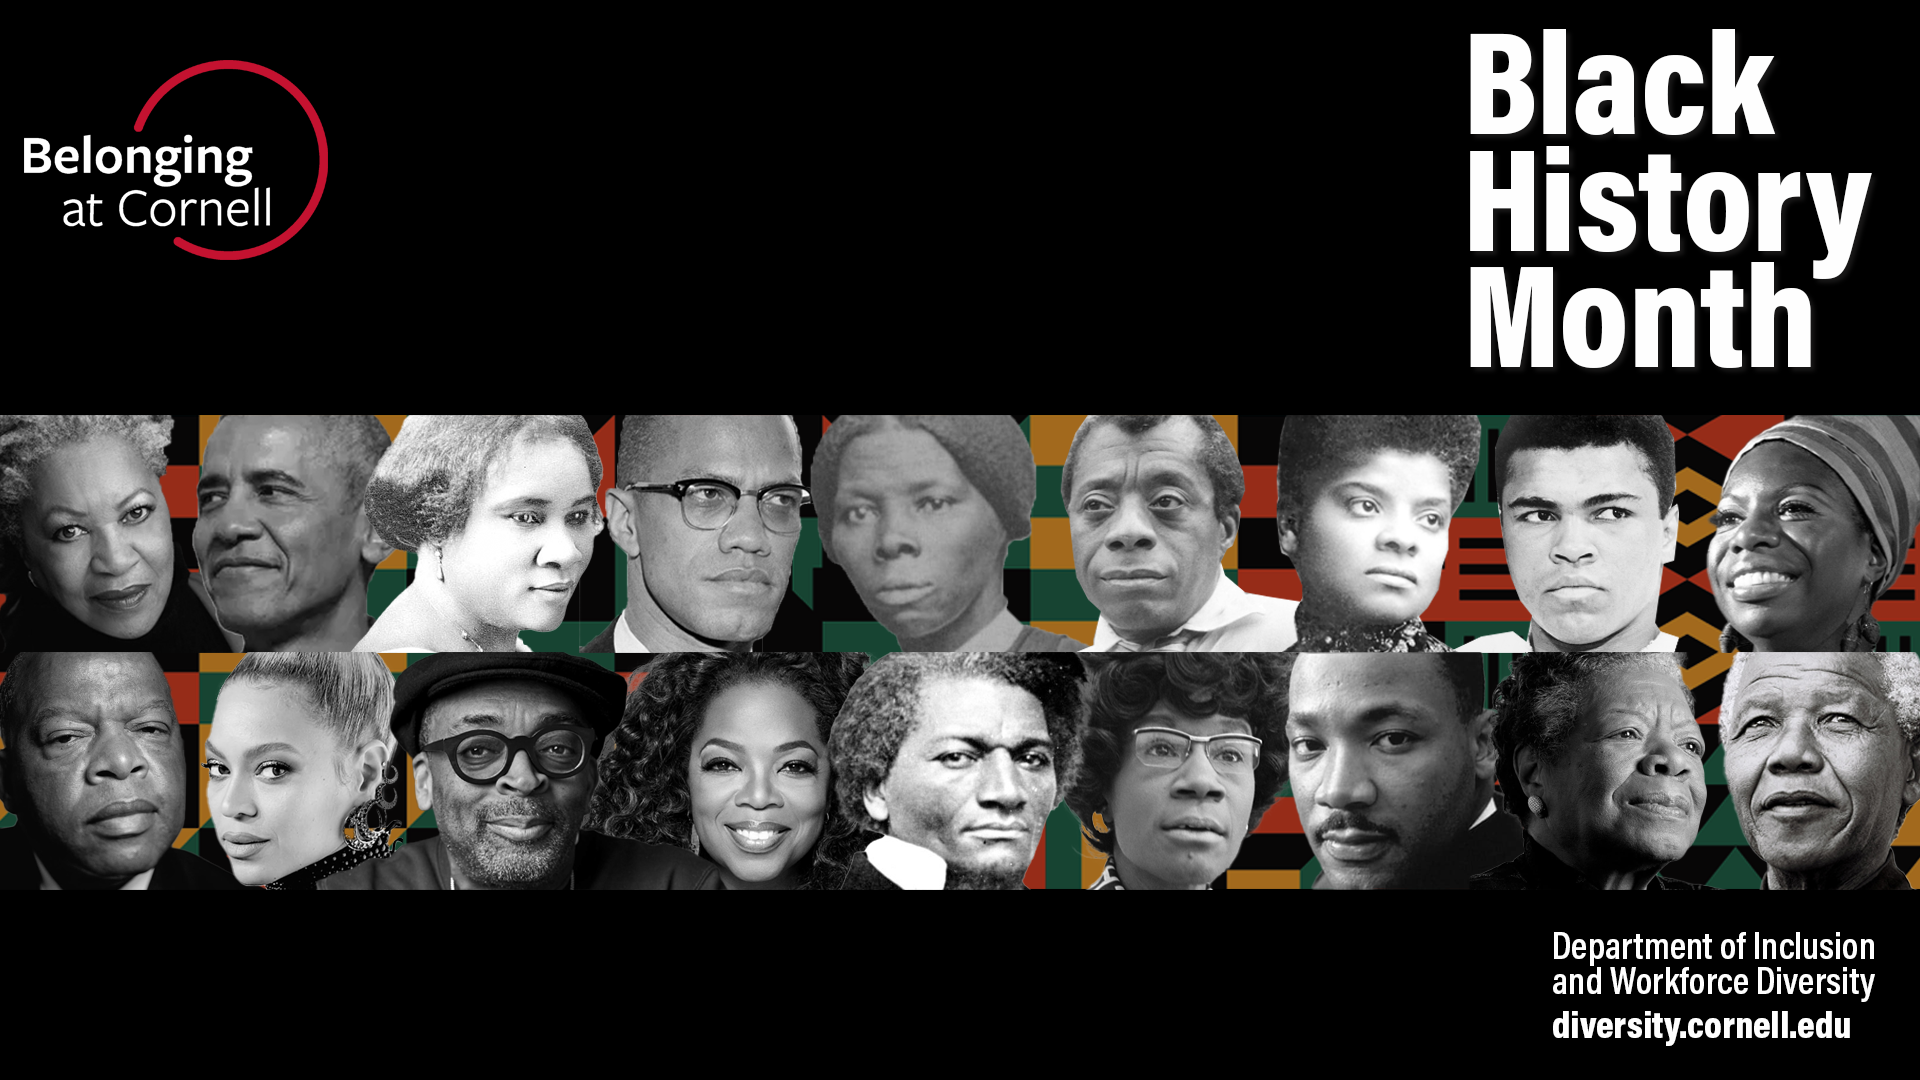 Zoom background visual for Black History Month with kente cloth and 18 cultural and historical figures in front of cloth